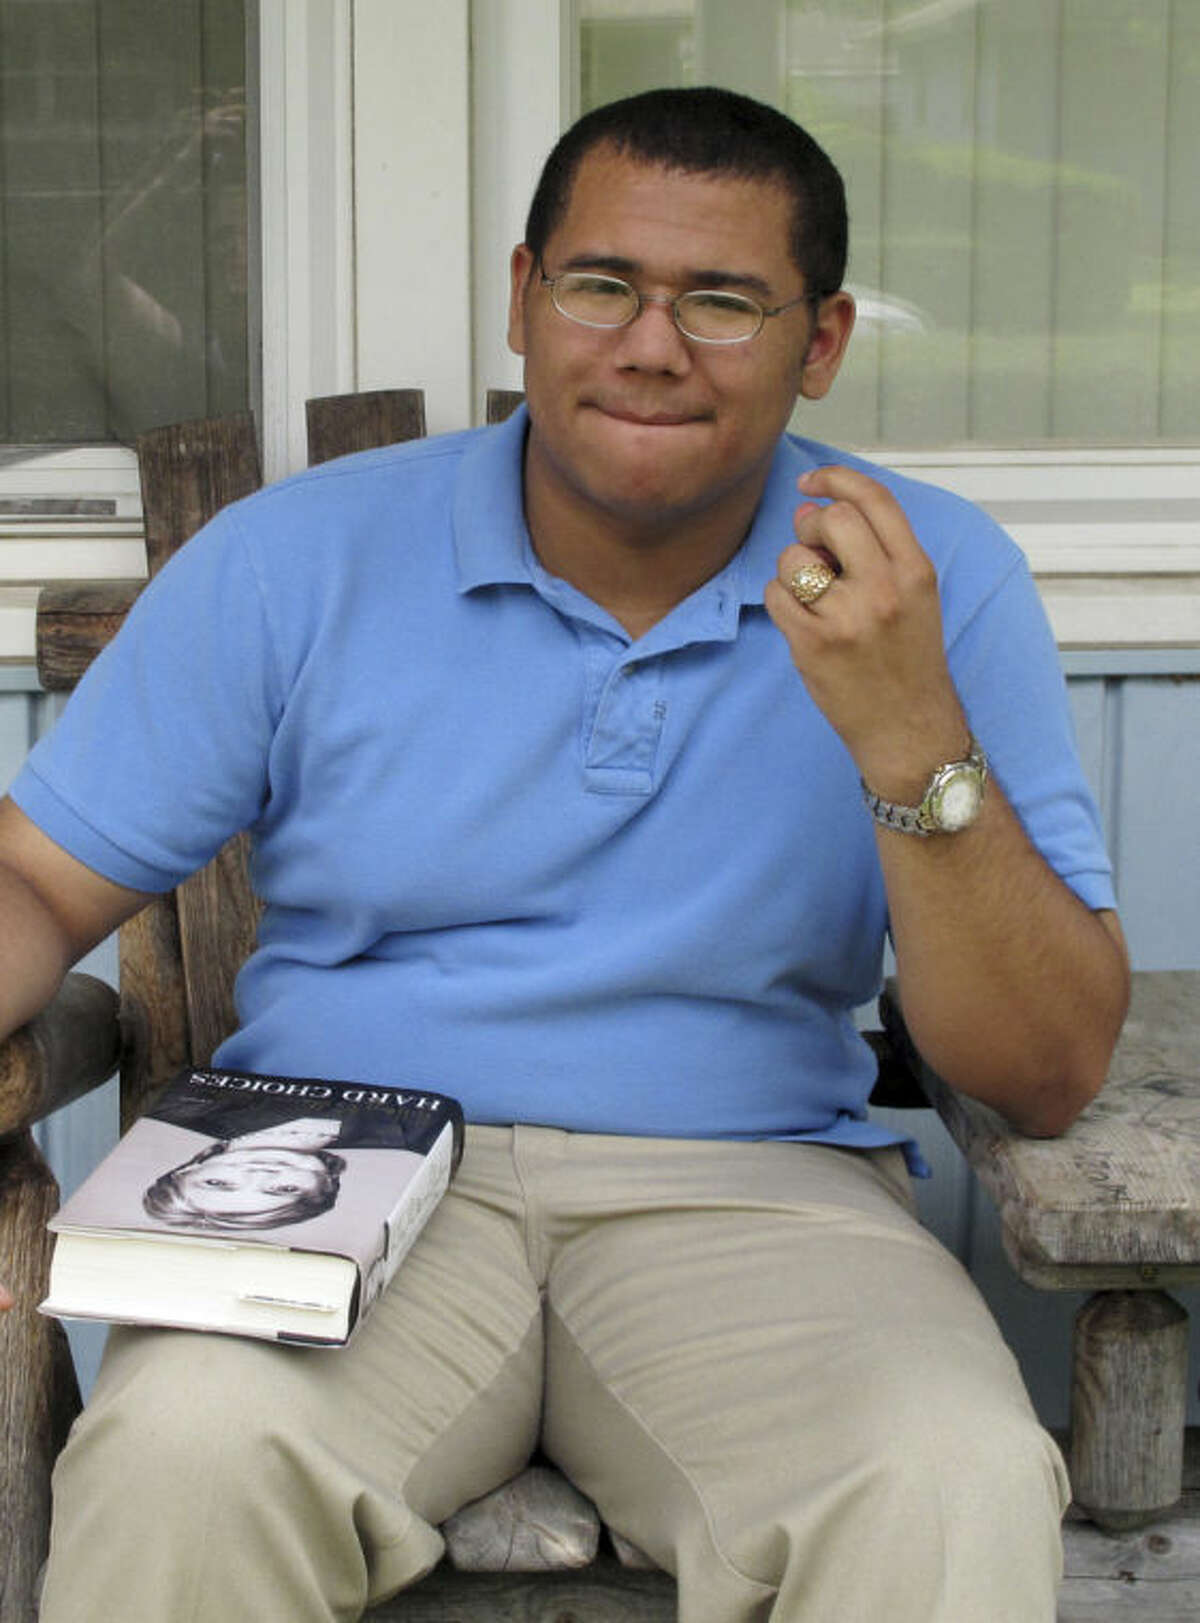 David Vernon, 18, takes a break while reading on his porch in Columbus, Ohio, on Monday, July 21, 2014. Both Republicans and Democrats are seeking voters like Vernon, a self-described moderate and an avid social media user who says he has seen a steady increase in tweets from both parties aimed at attracting younger African-American voters to get involved in political campaigns. (AP Photo)